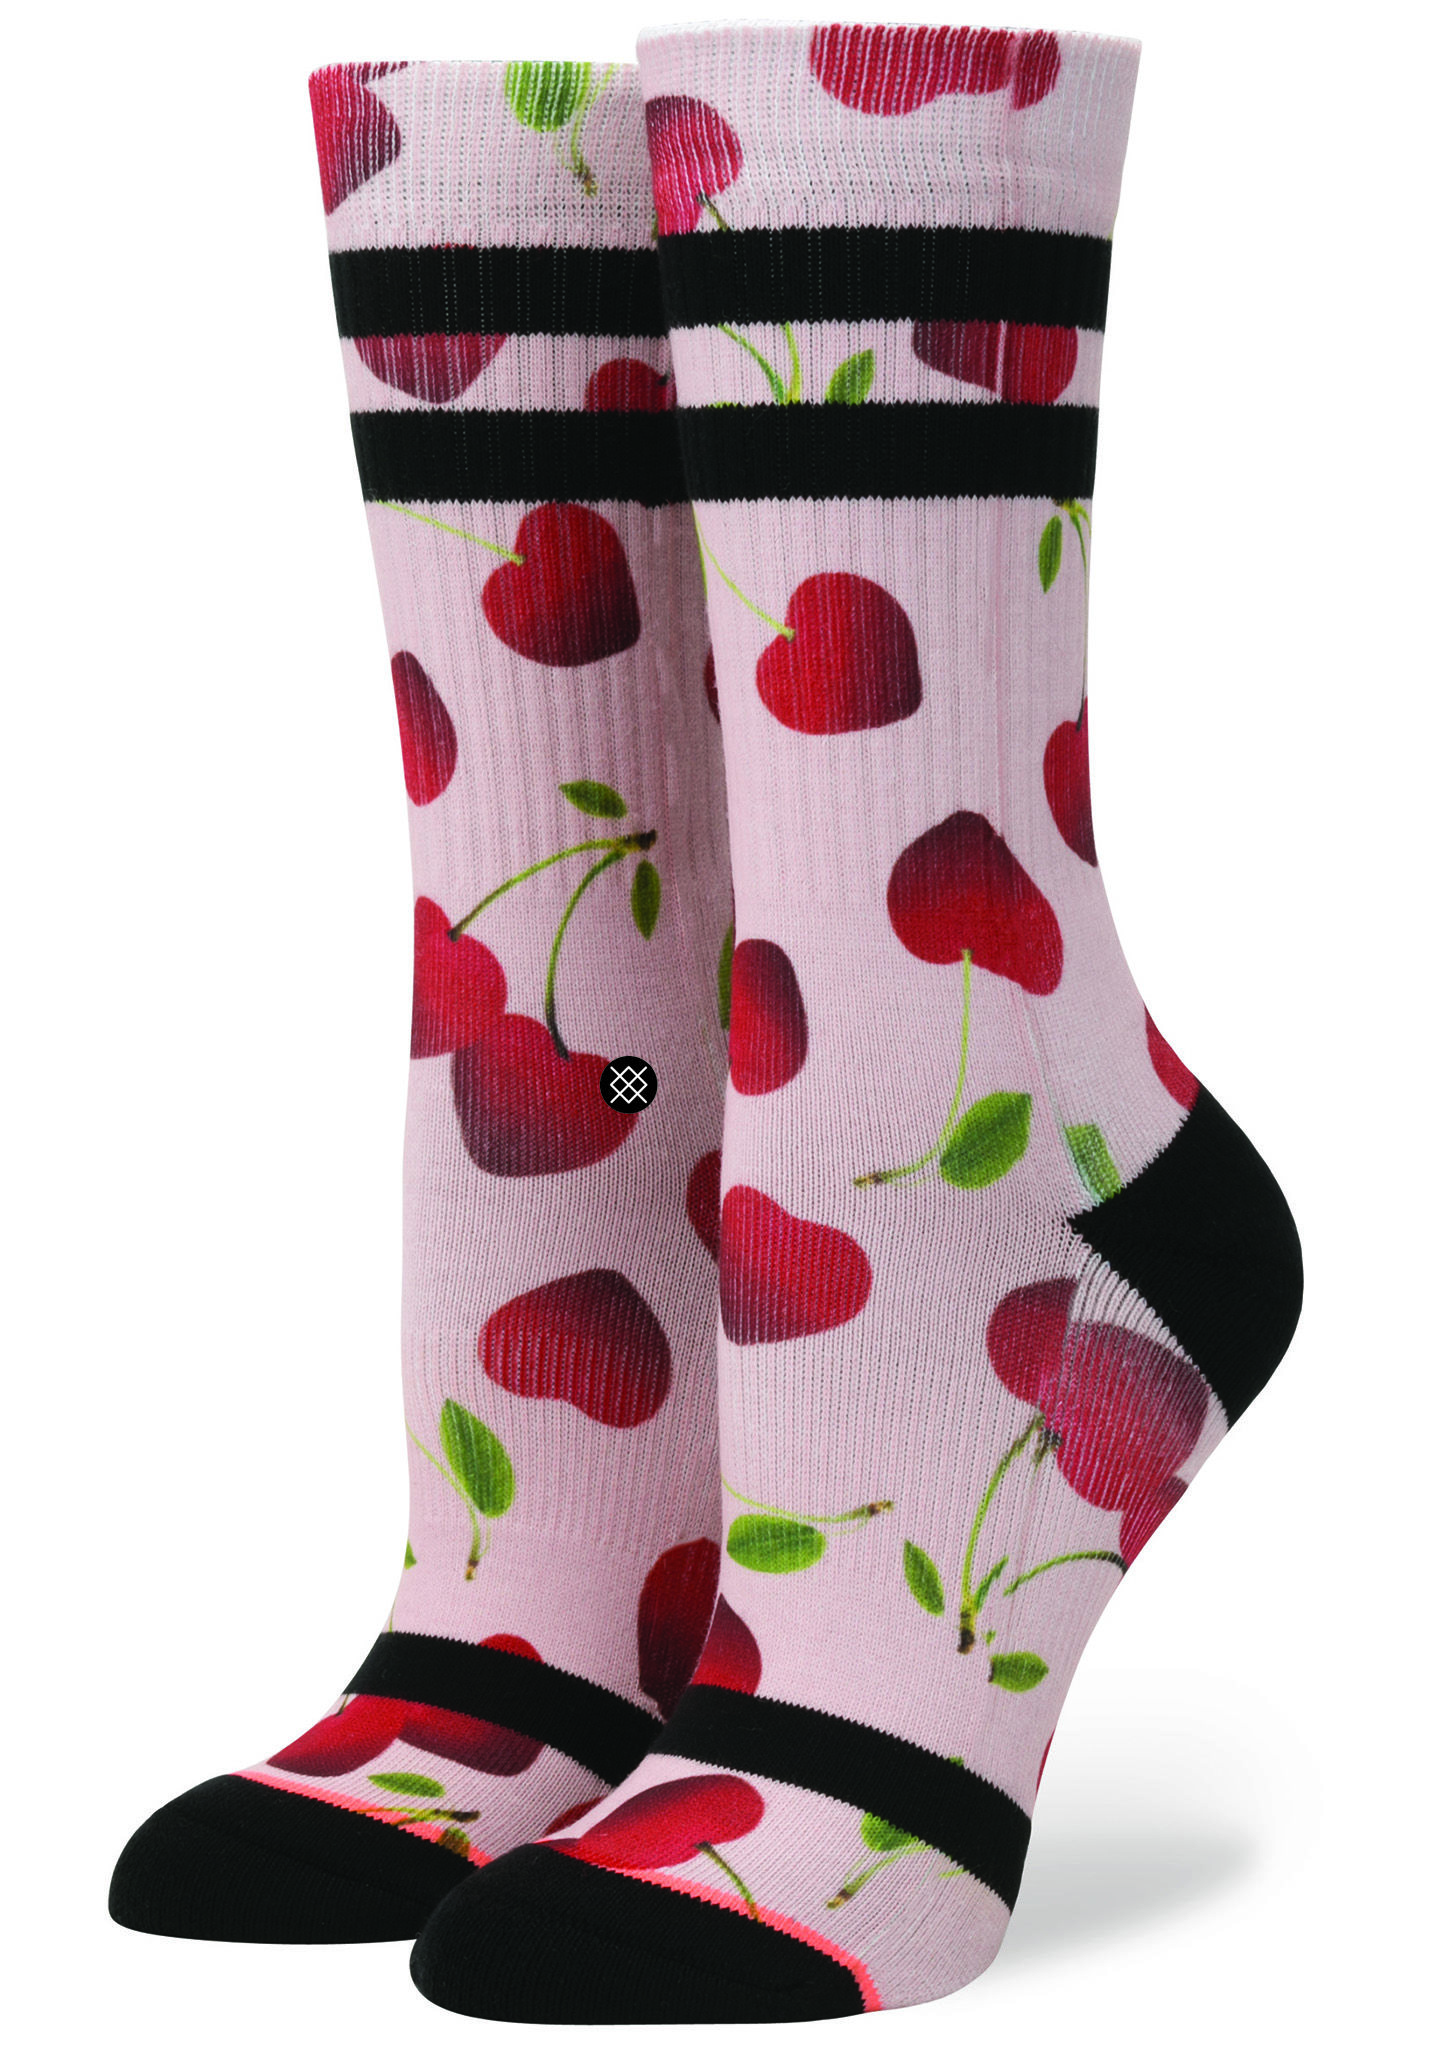 41631ca0ee5d STANCE Cherry Bomb - Socks for Women - Pink - Planet Sports